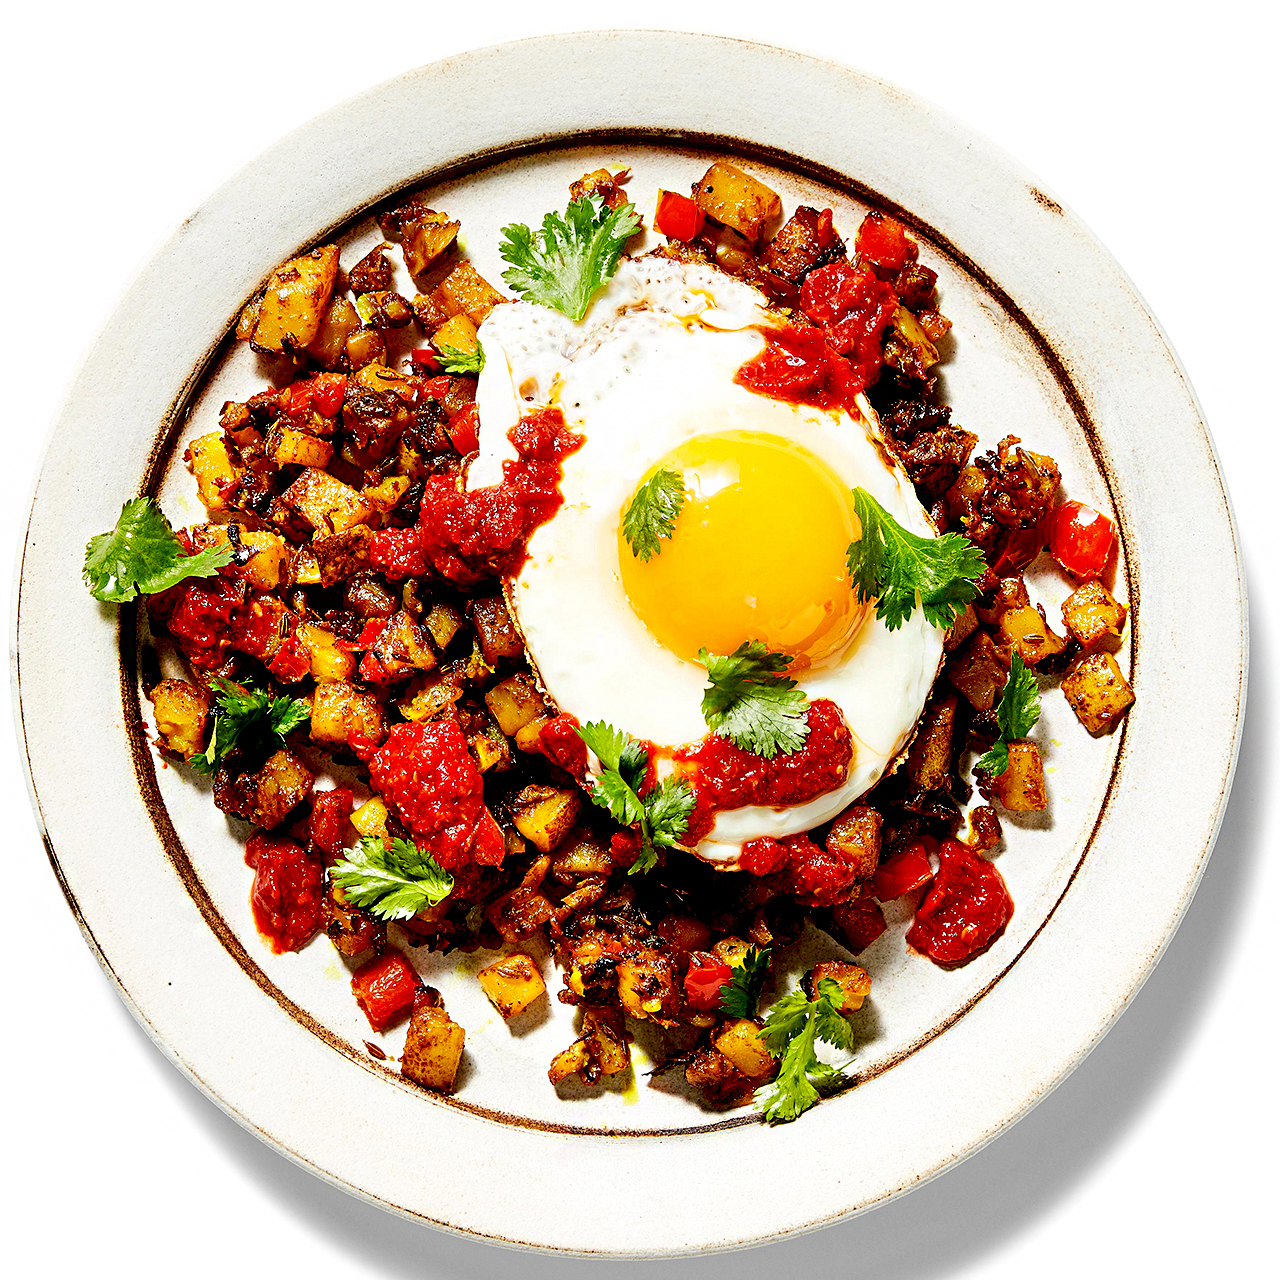 Spiced Hash & Eggs with Harissa Drizzle